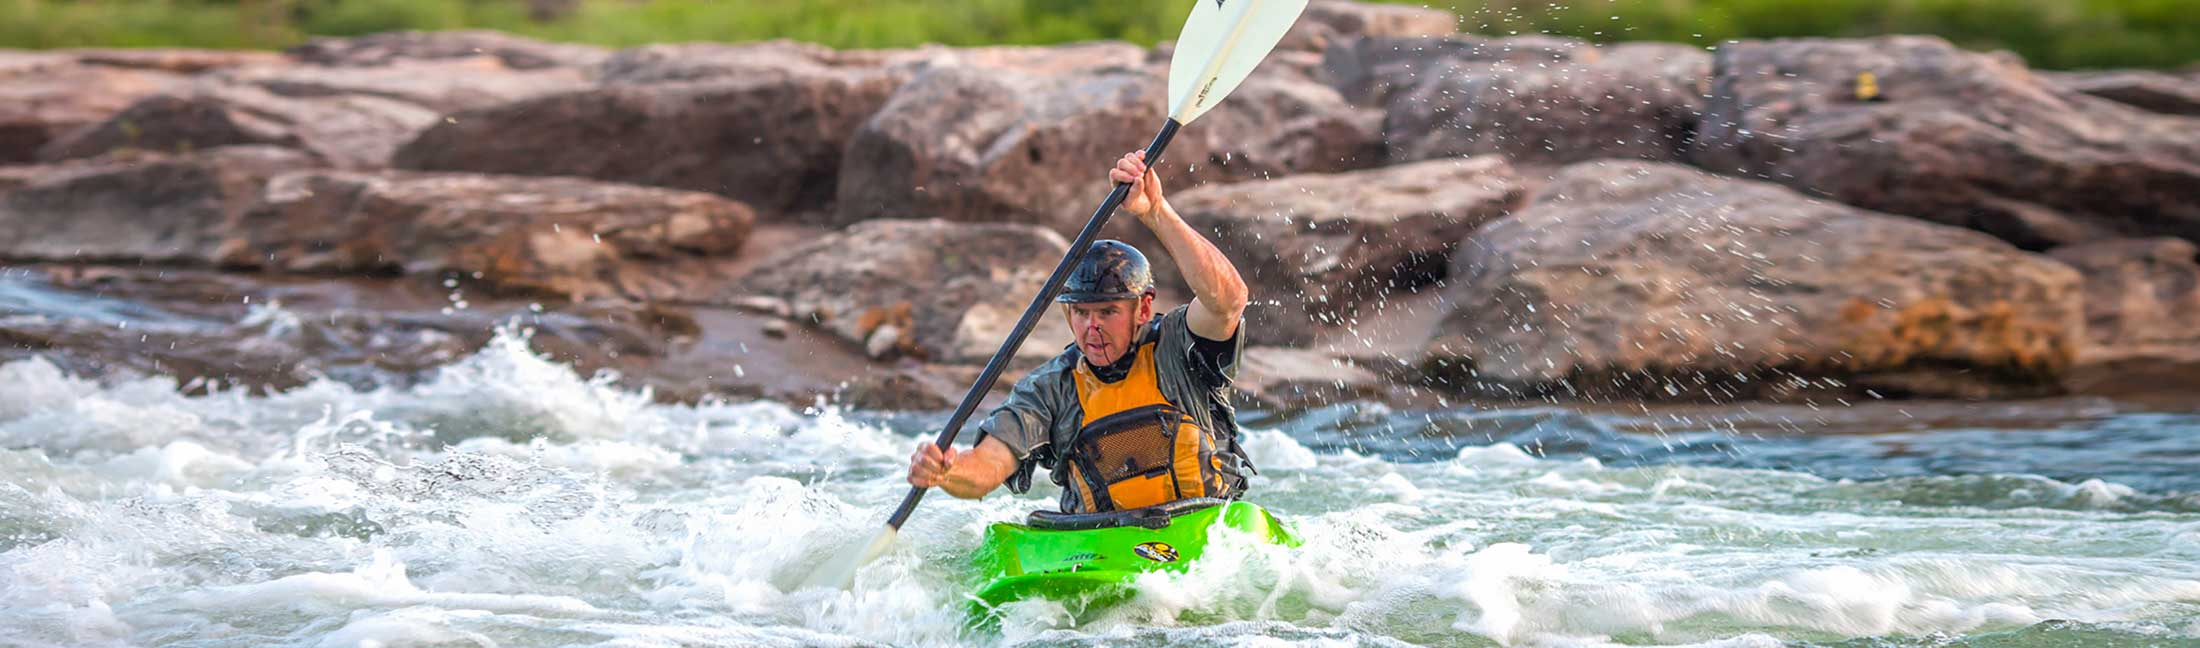 Kayaking and Canoeing in Missoula, Montana